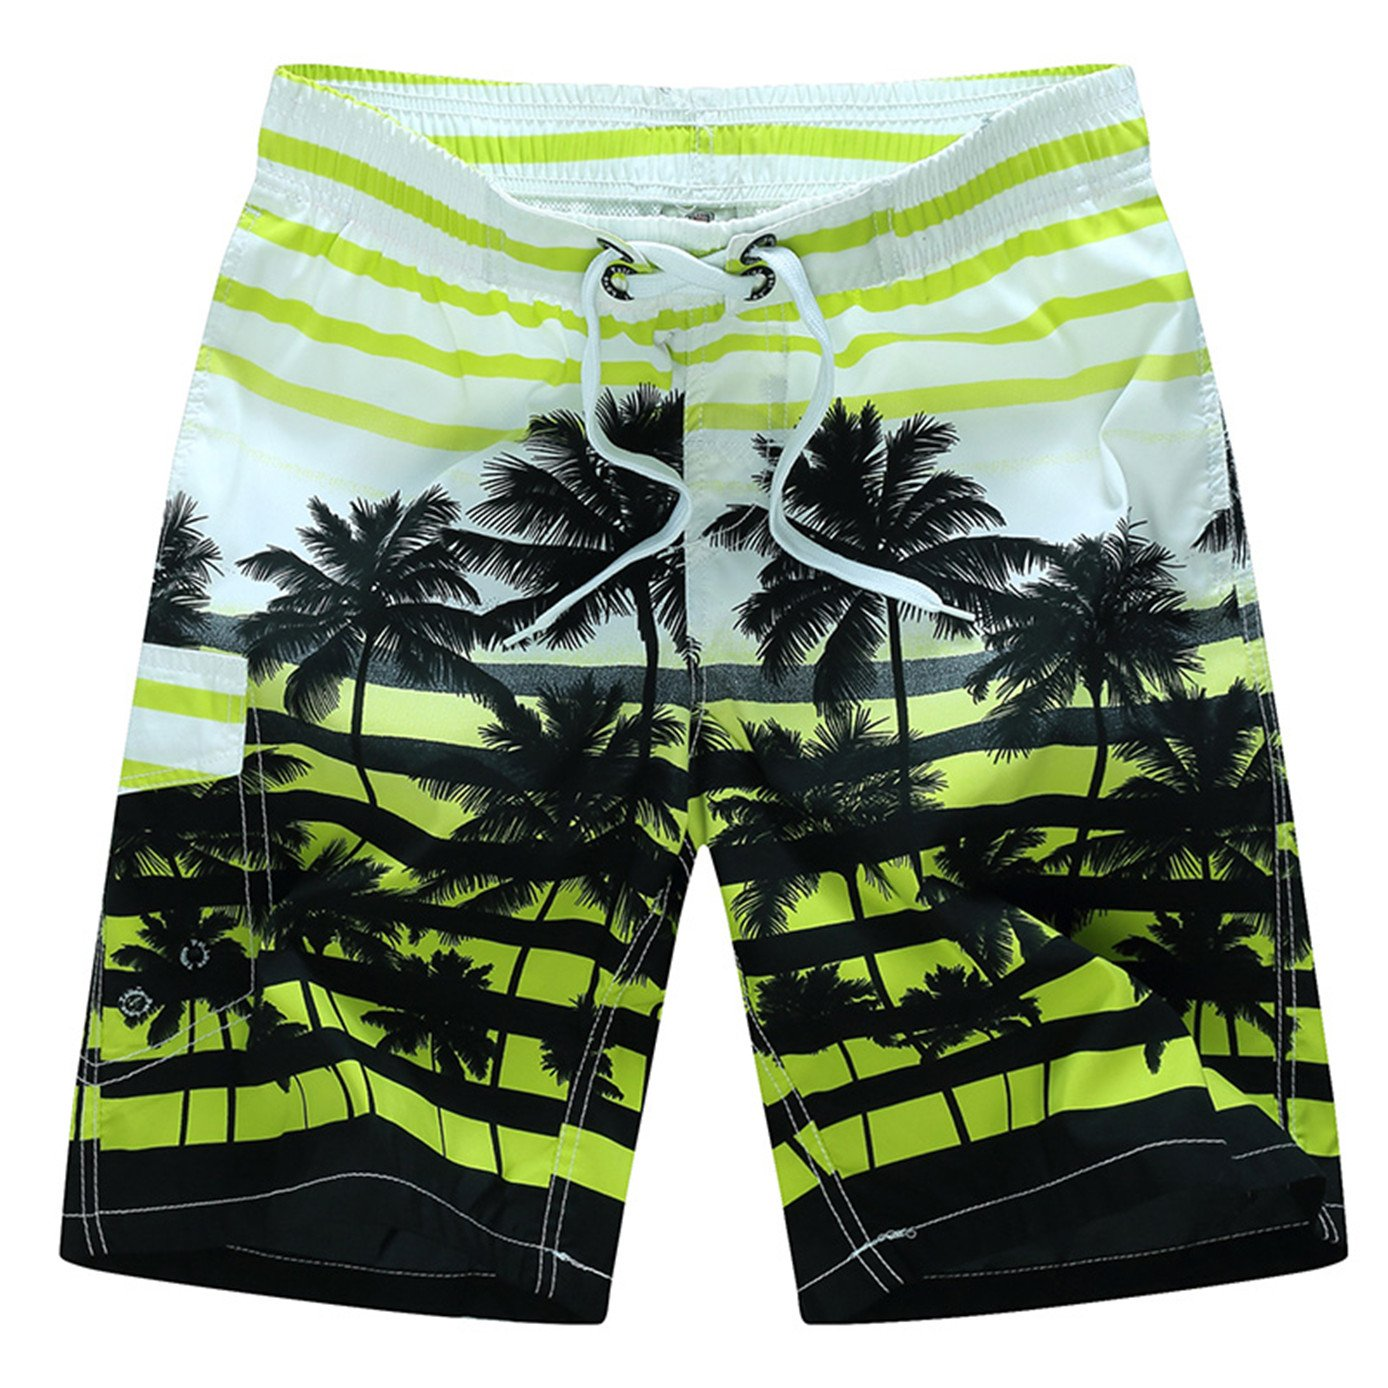 Tailor Pal Love Swim Trunks for Boys Volley Swim Strip Short Comfort Boardshort Swimwear with Coconut Tree Print Green 5X Large by Tailor Pal Love (Image #1)